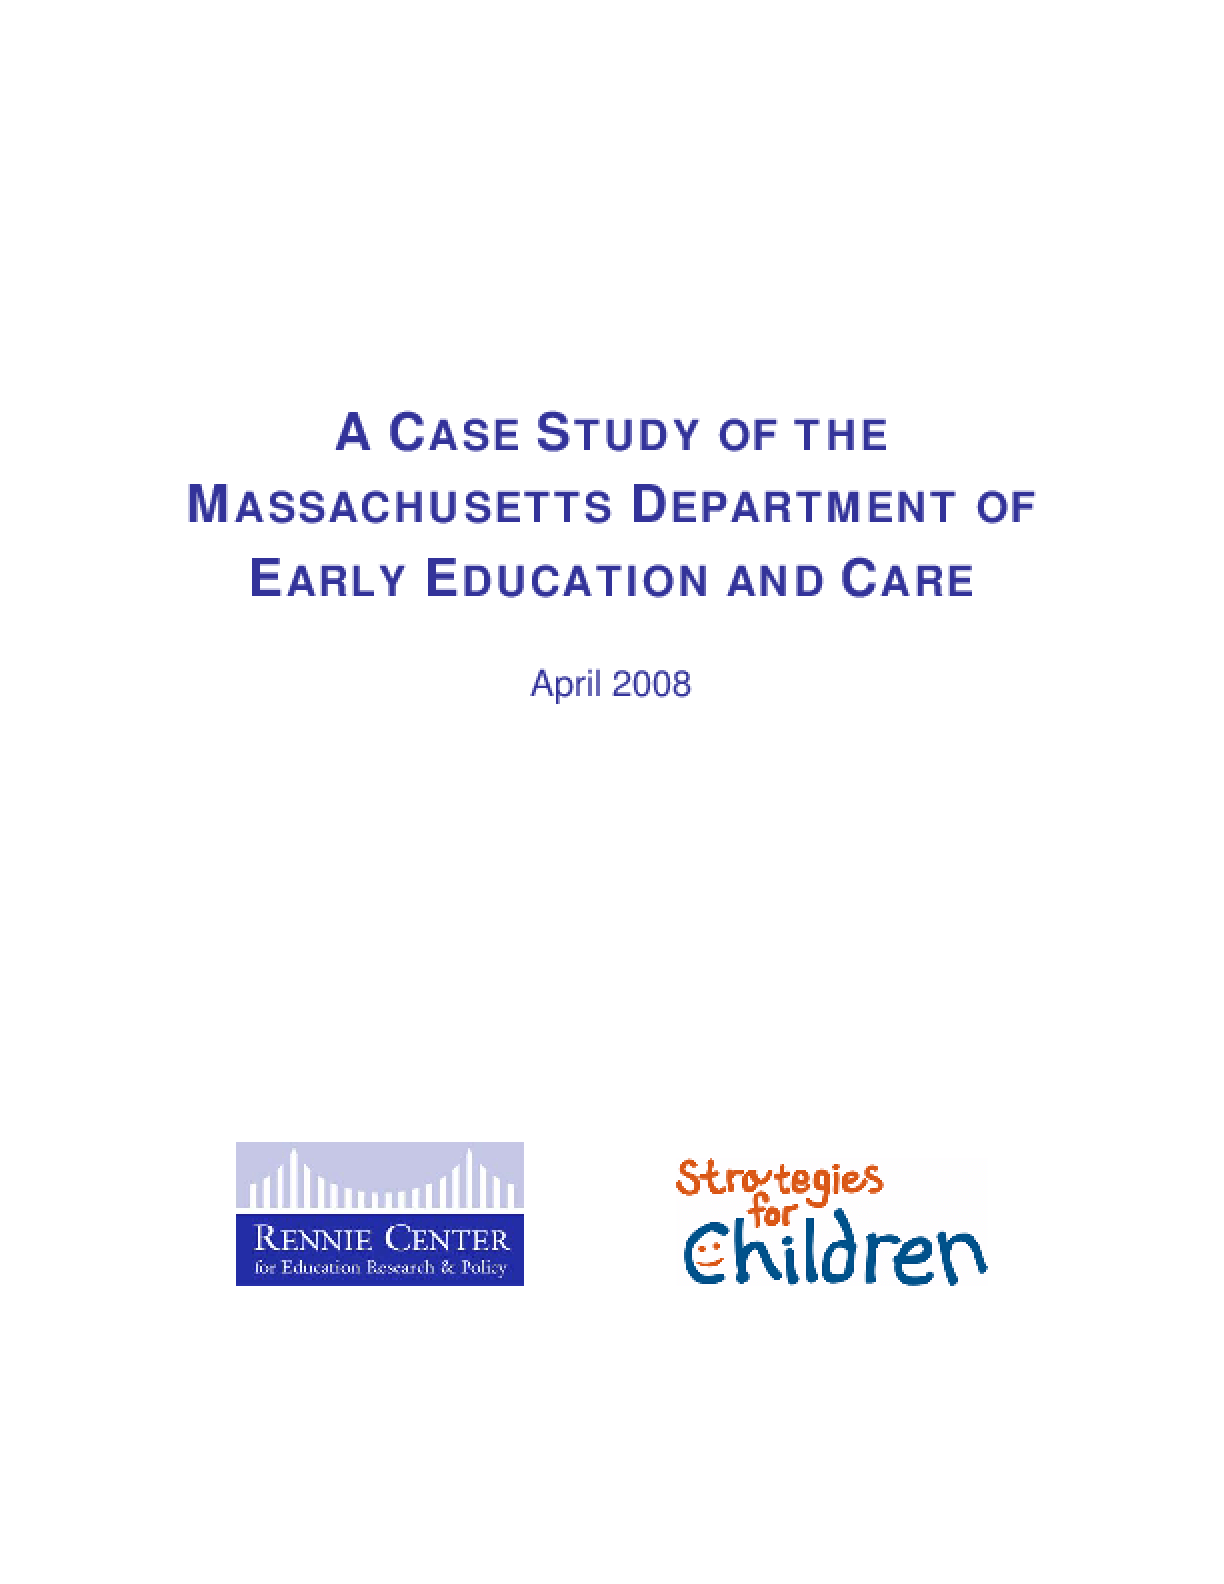 A Case Study of the Massachusetts Department of Early Education and Care (Full Report)